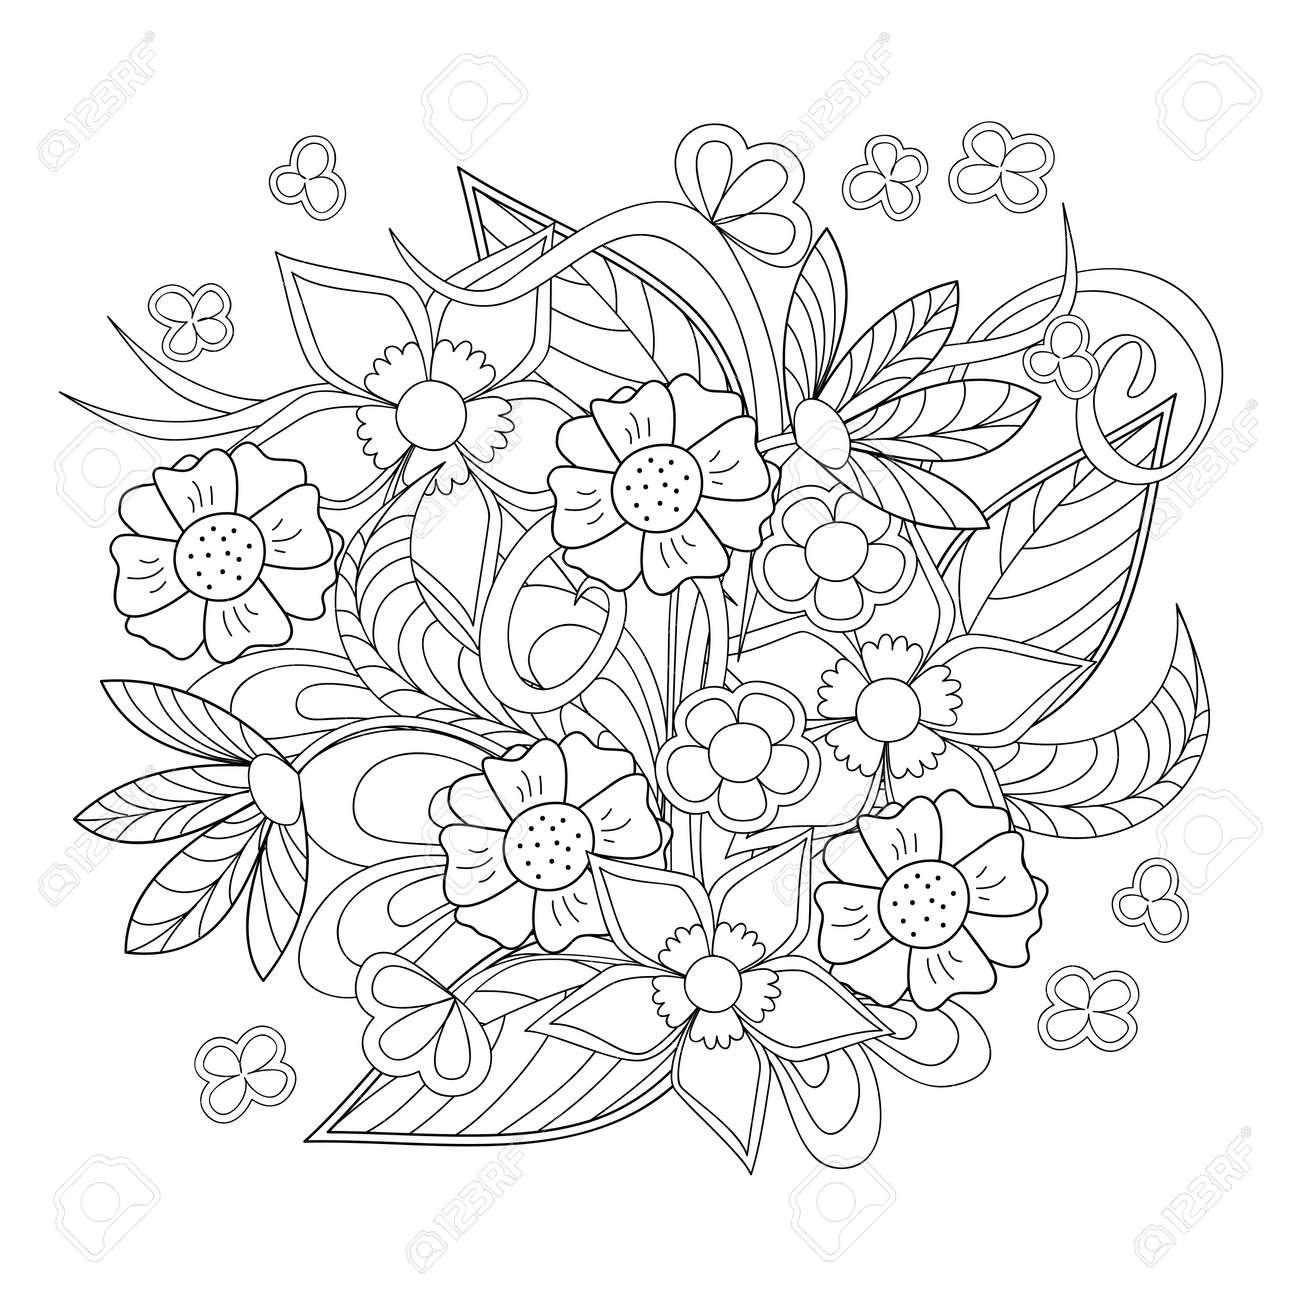 Hand Drawn Image With Flowers For Adult And Children Coloring Book Decoration Clock